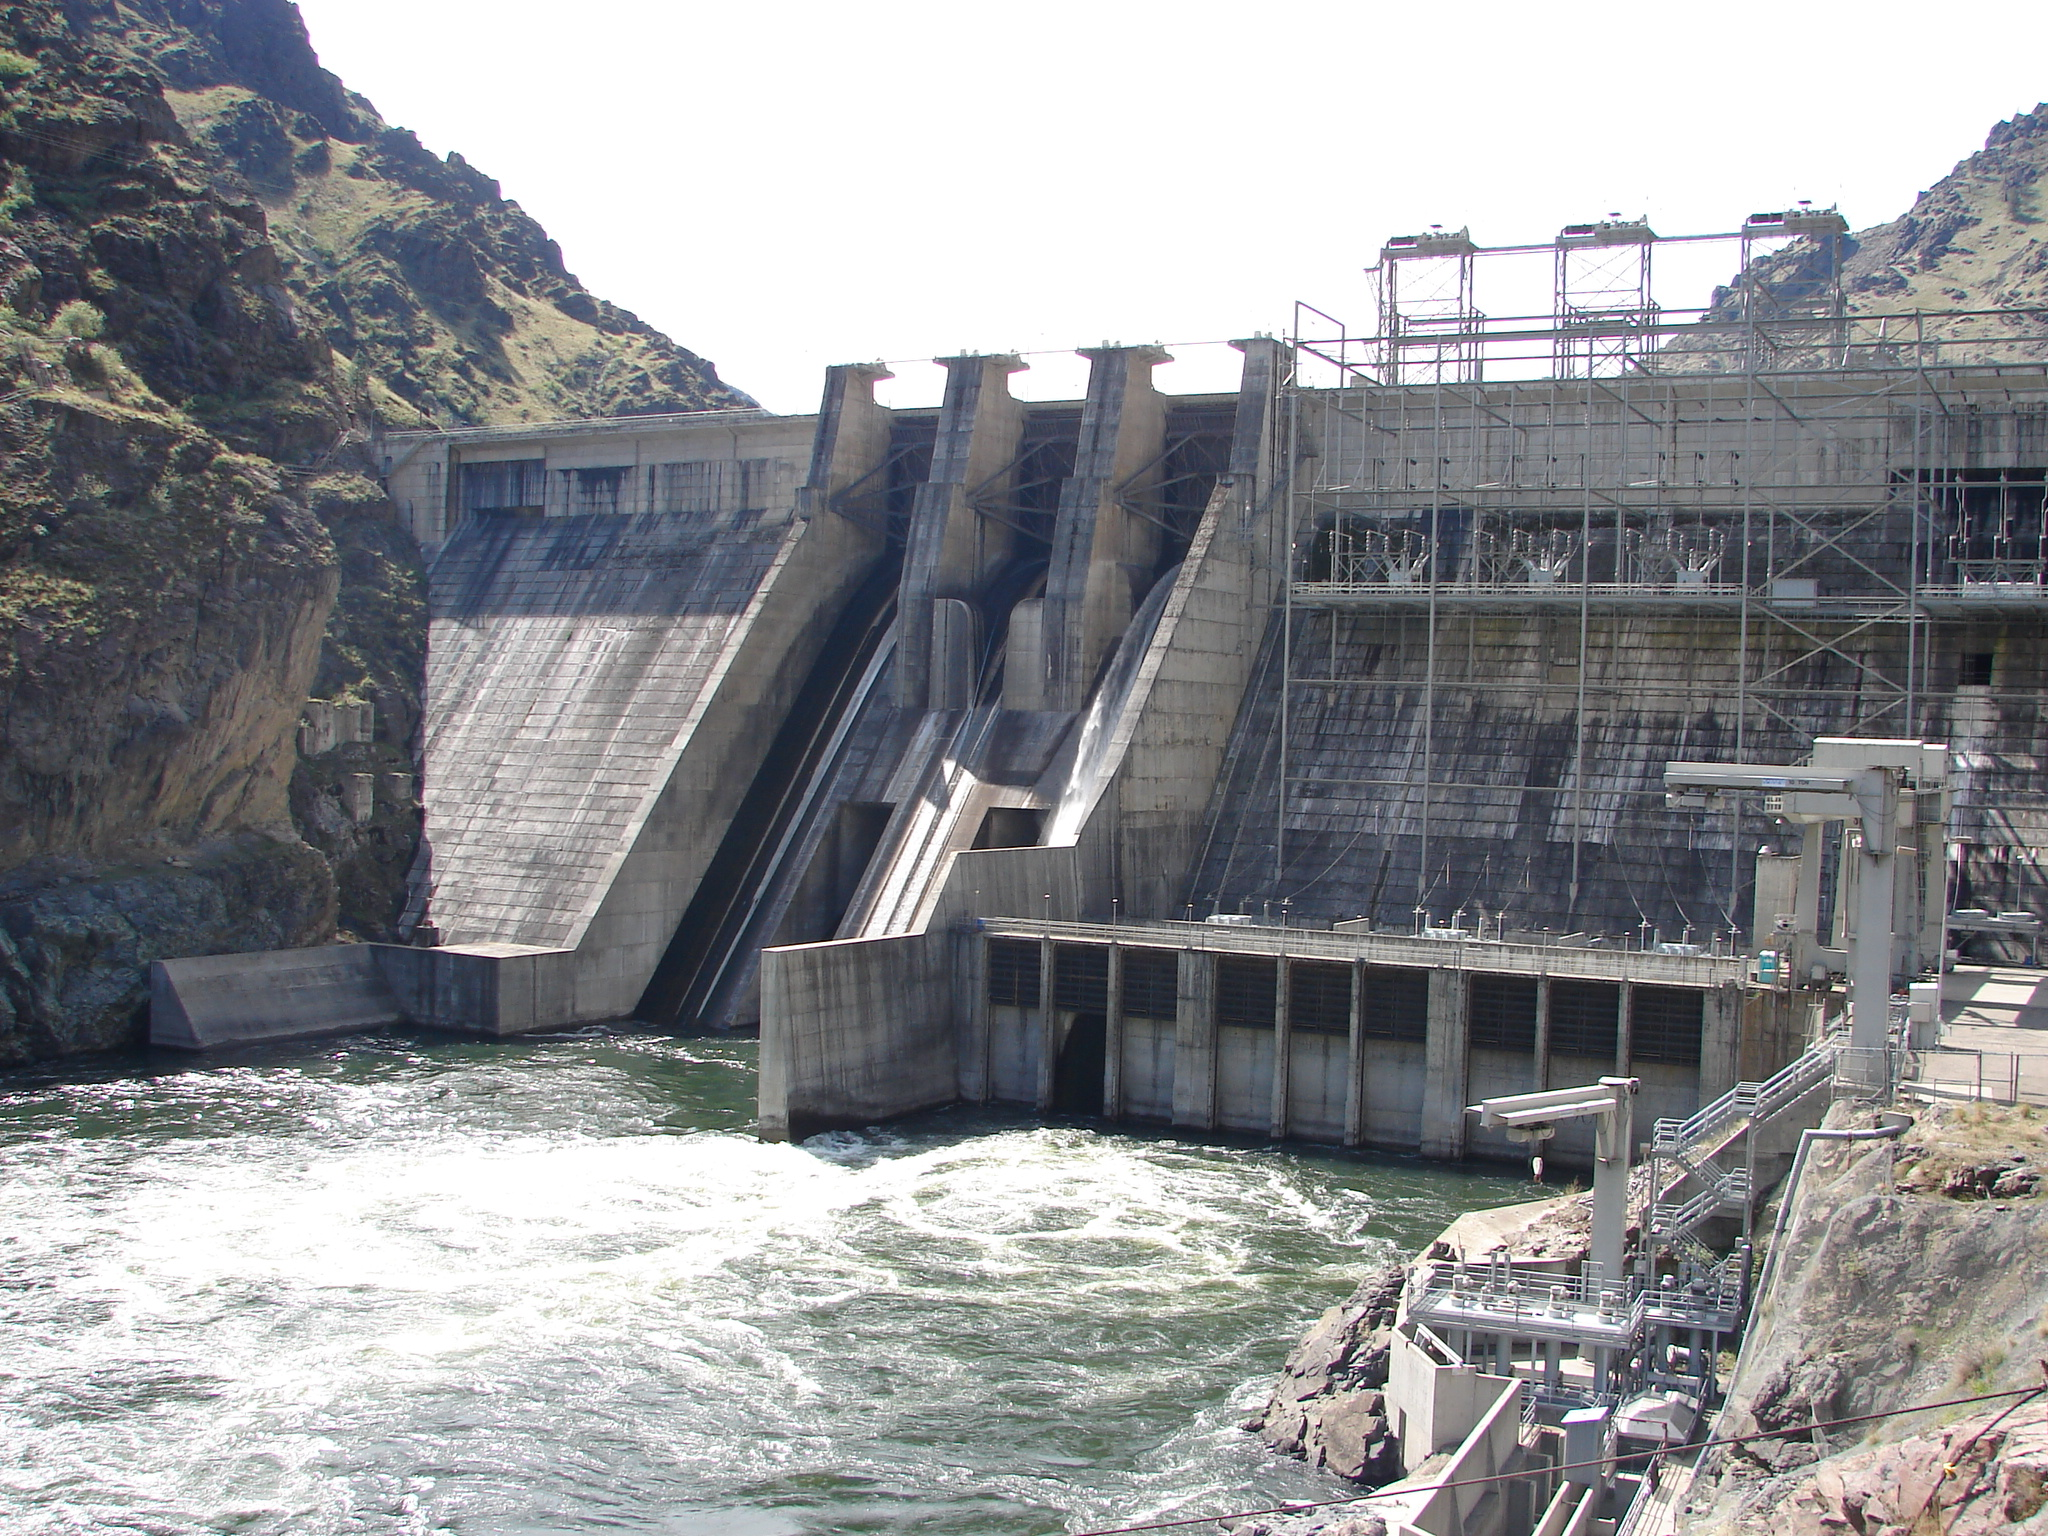 Water being released from the Hells Canyon Dam into the Snake River